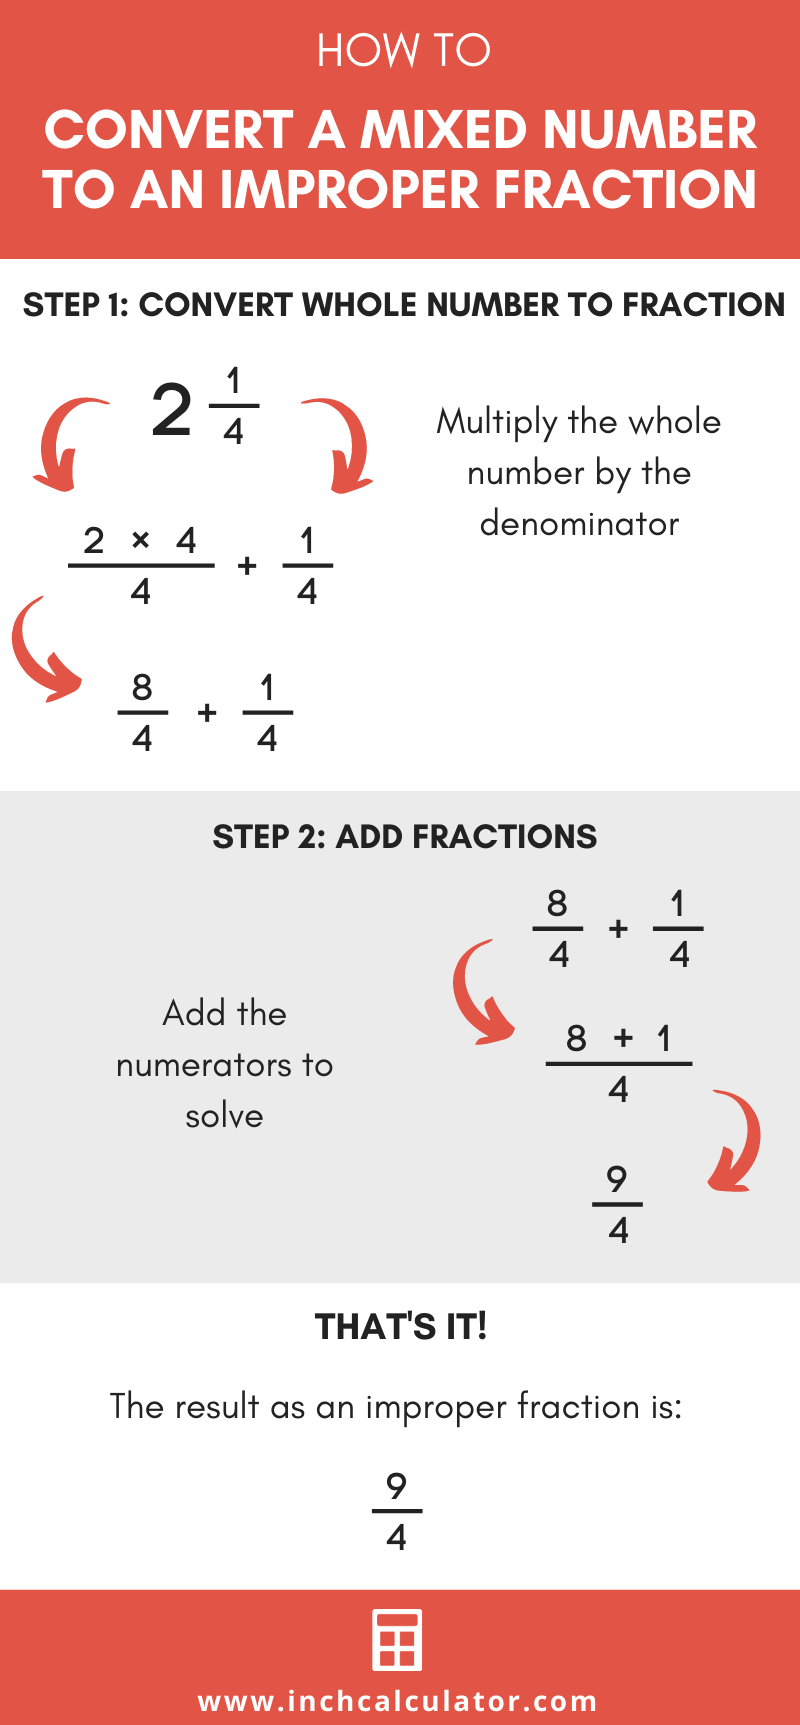 Share mixed number to improper fraction calculator